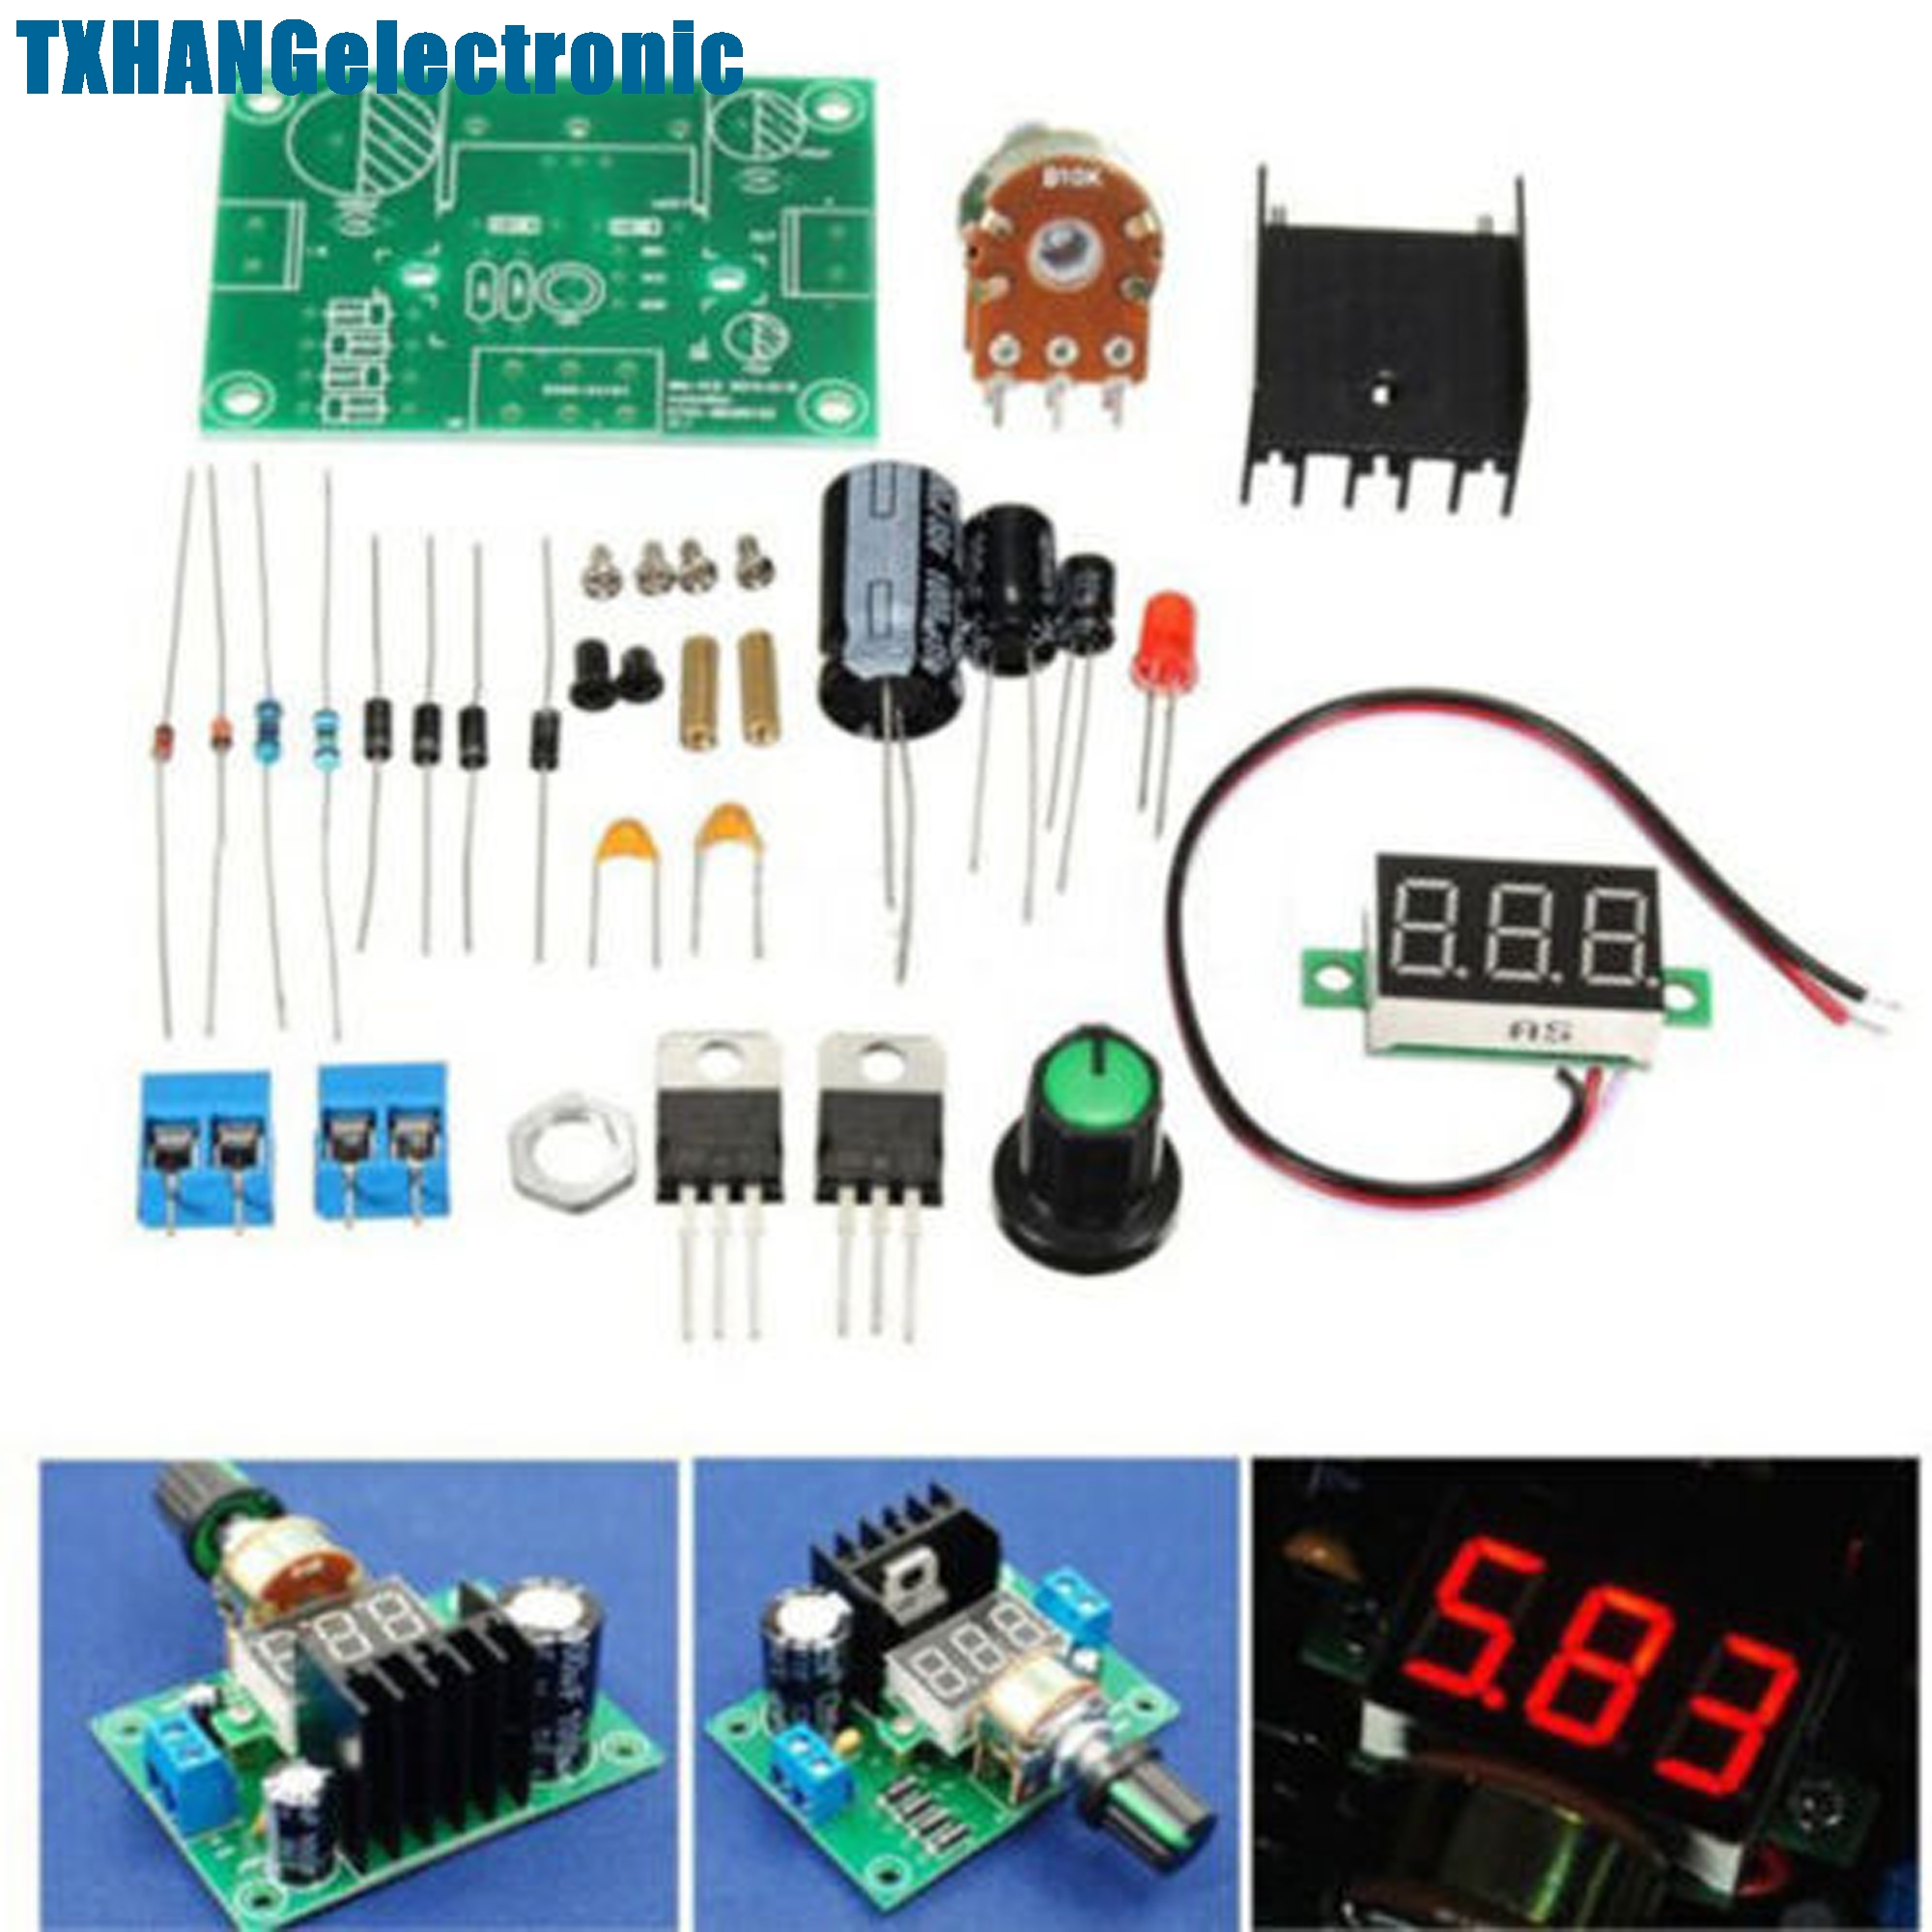 Lm317 Digital Display Adjustable Regulated Power Supply Board Module Circuit With Variable Output Voltage Of 12 30v Diy Kits Electronic In Integrated Circuits From Components Supplies On